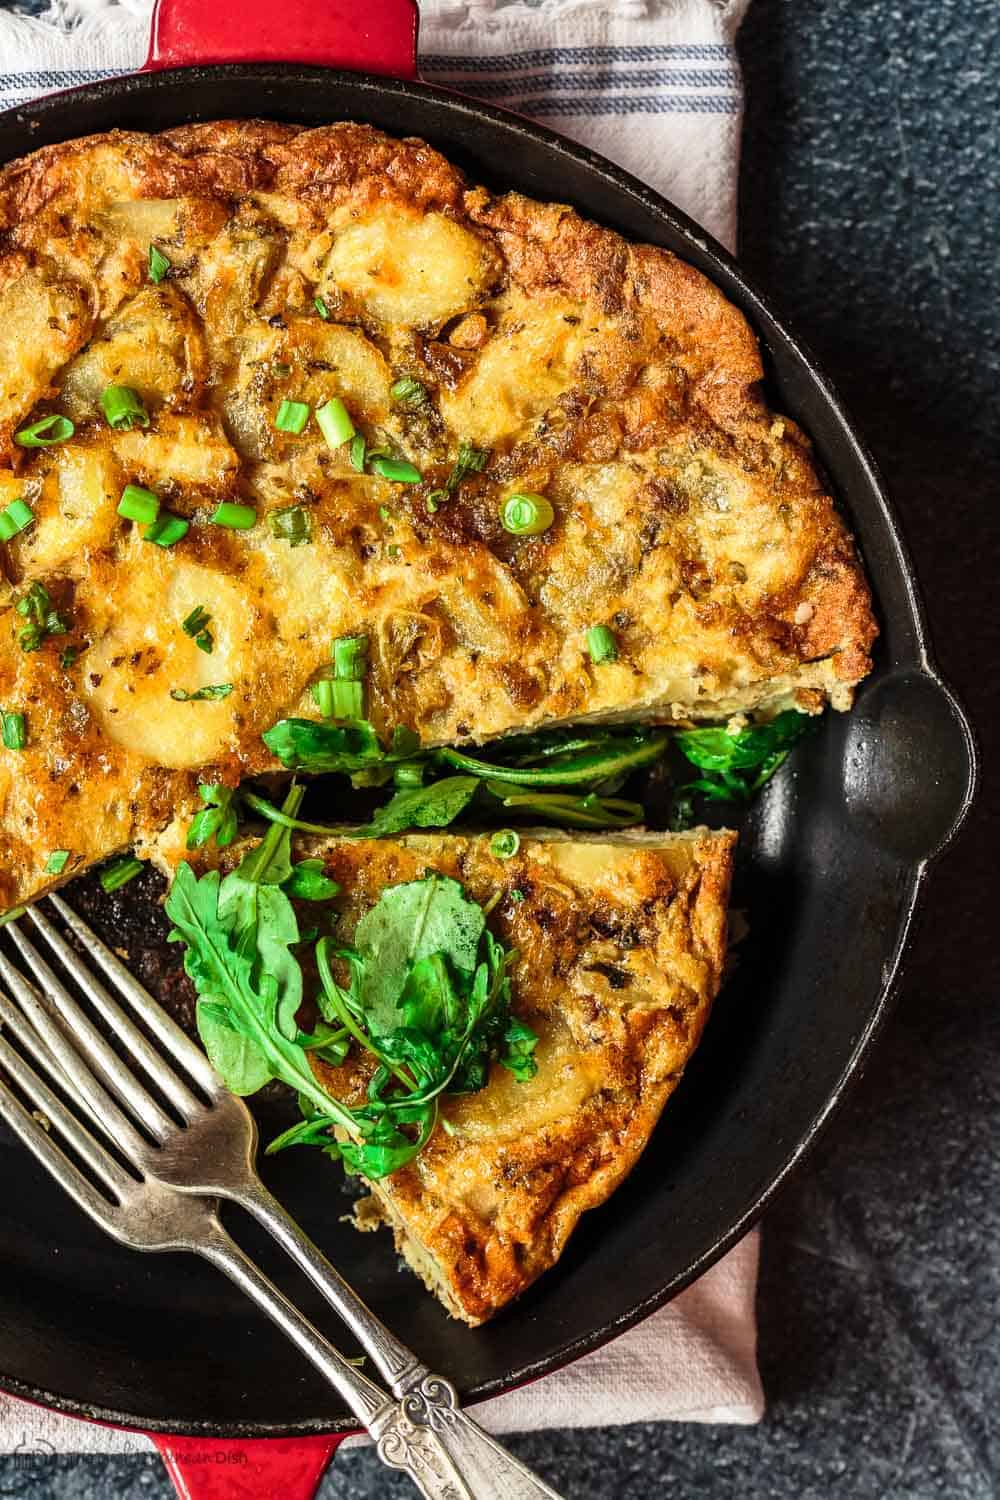 Simple Spanish Tortilla Recipe | The Mediterranean Dish. Spanish tortilla is a simple, satisfying, and perfectly layered potato and egg casserole. Serve it with our easy spinach and arugula salad. Get both recipes on TheMediterraneanDish.com #spanishtortilla #eggcasserole #fritatta #mediterraneanfood #mediterraneanrecipe #brunch #breakfast